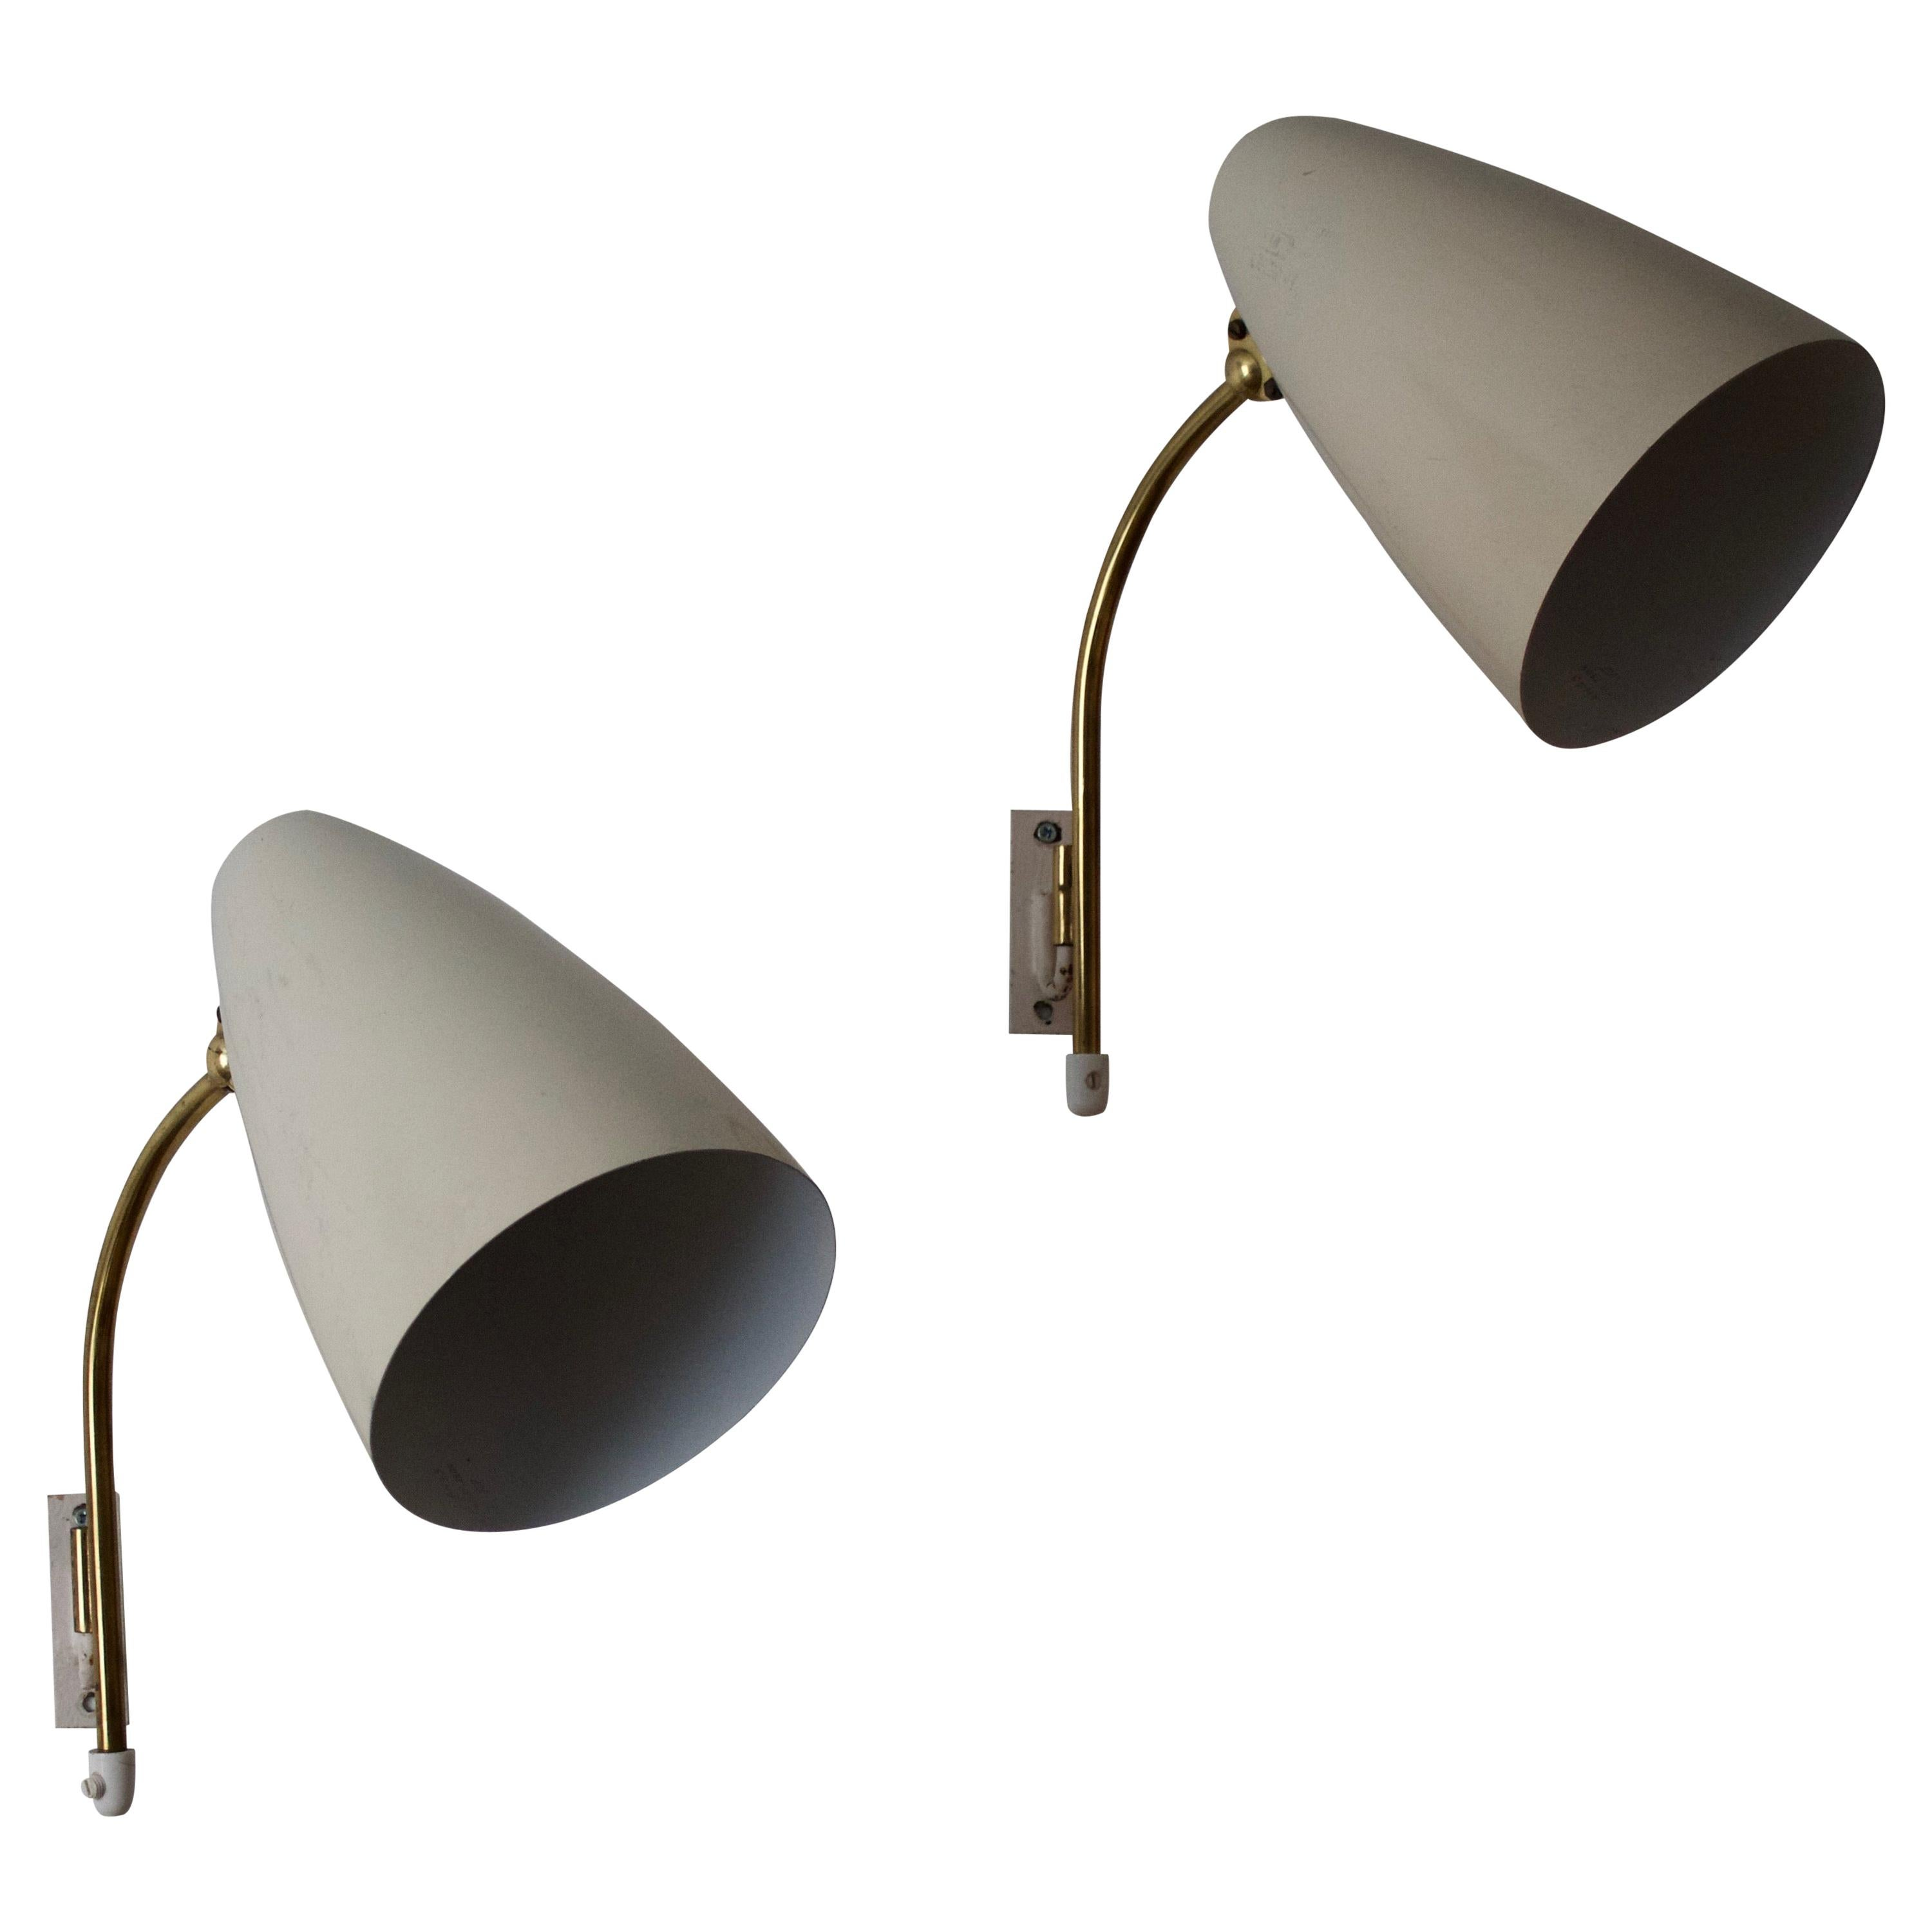 Itsu, Adjustable Wall Lights, Brass, Lacquered metal, Finland, 1950s